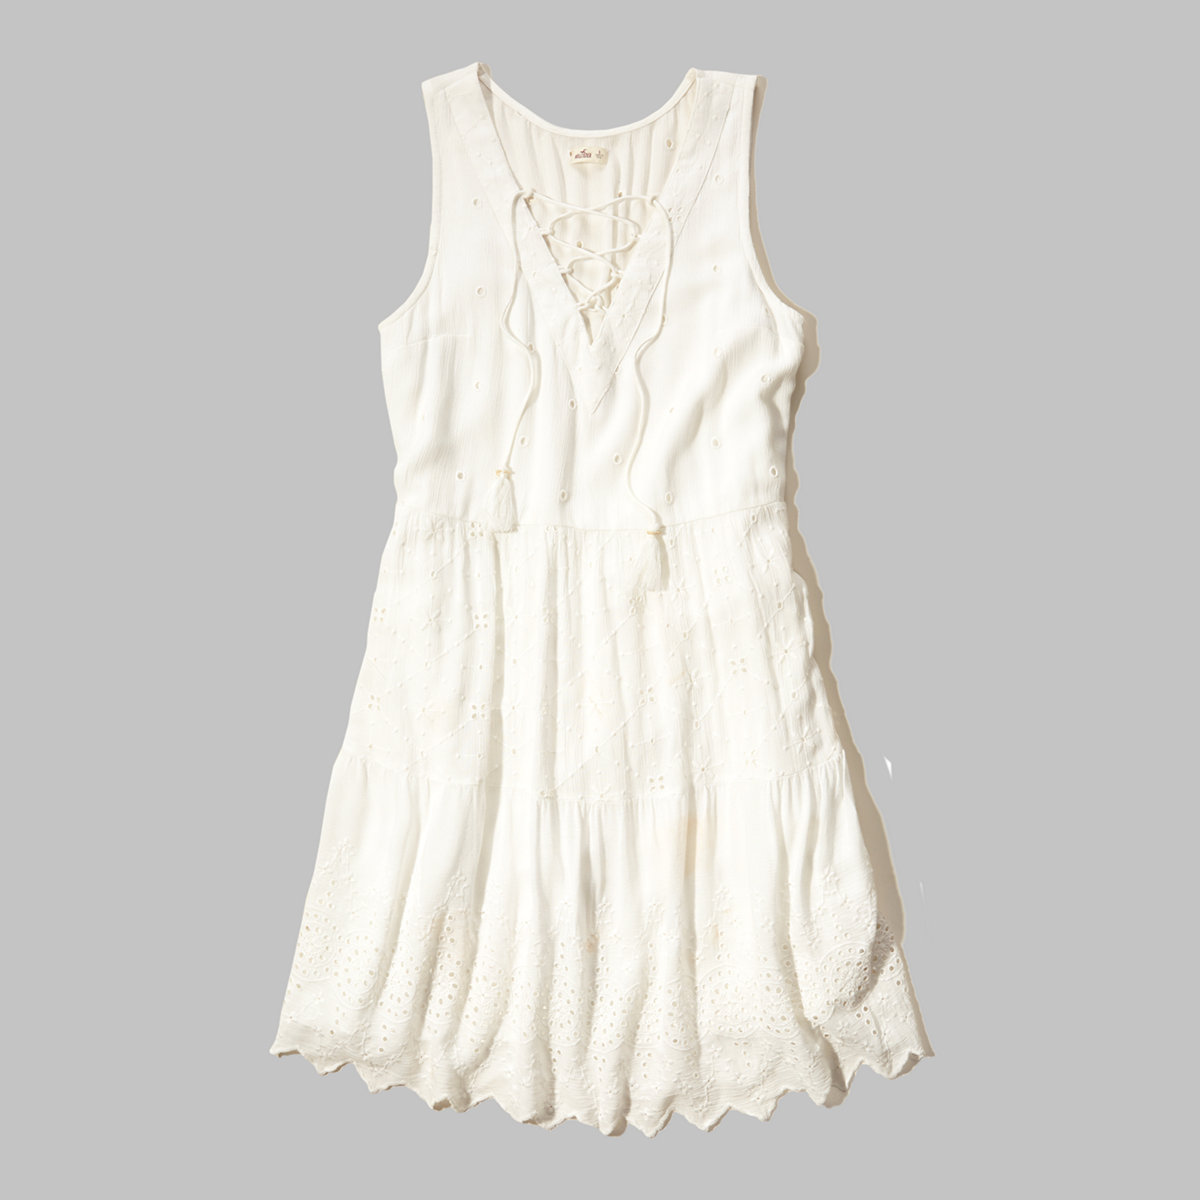 Lace-Up Eyelet Embroidered Dress